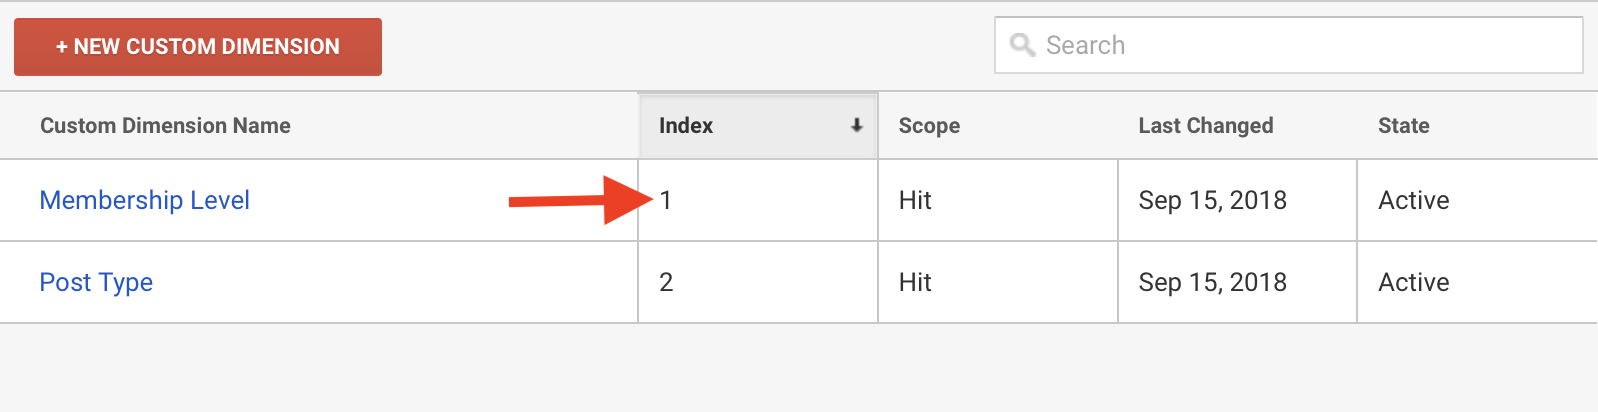 Custom Dimension Index for Membership Level in Google Analytics